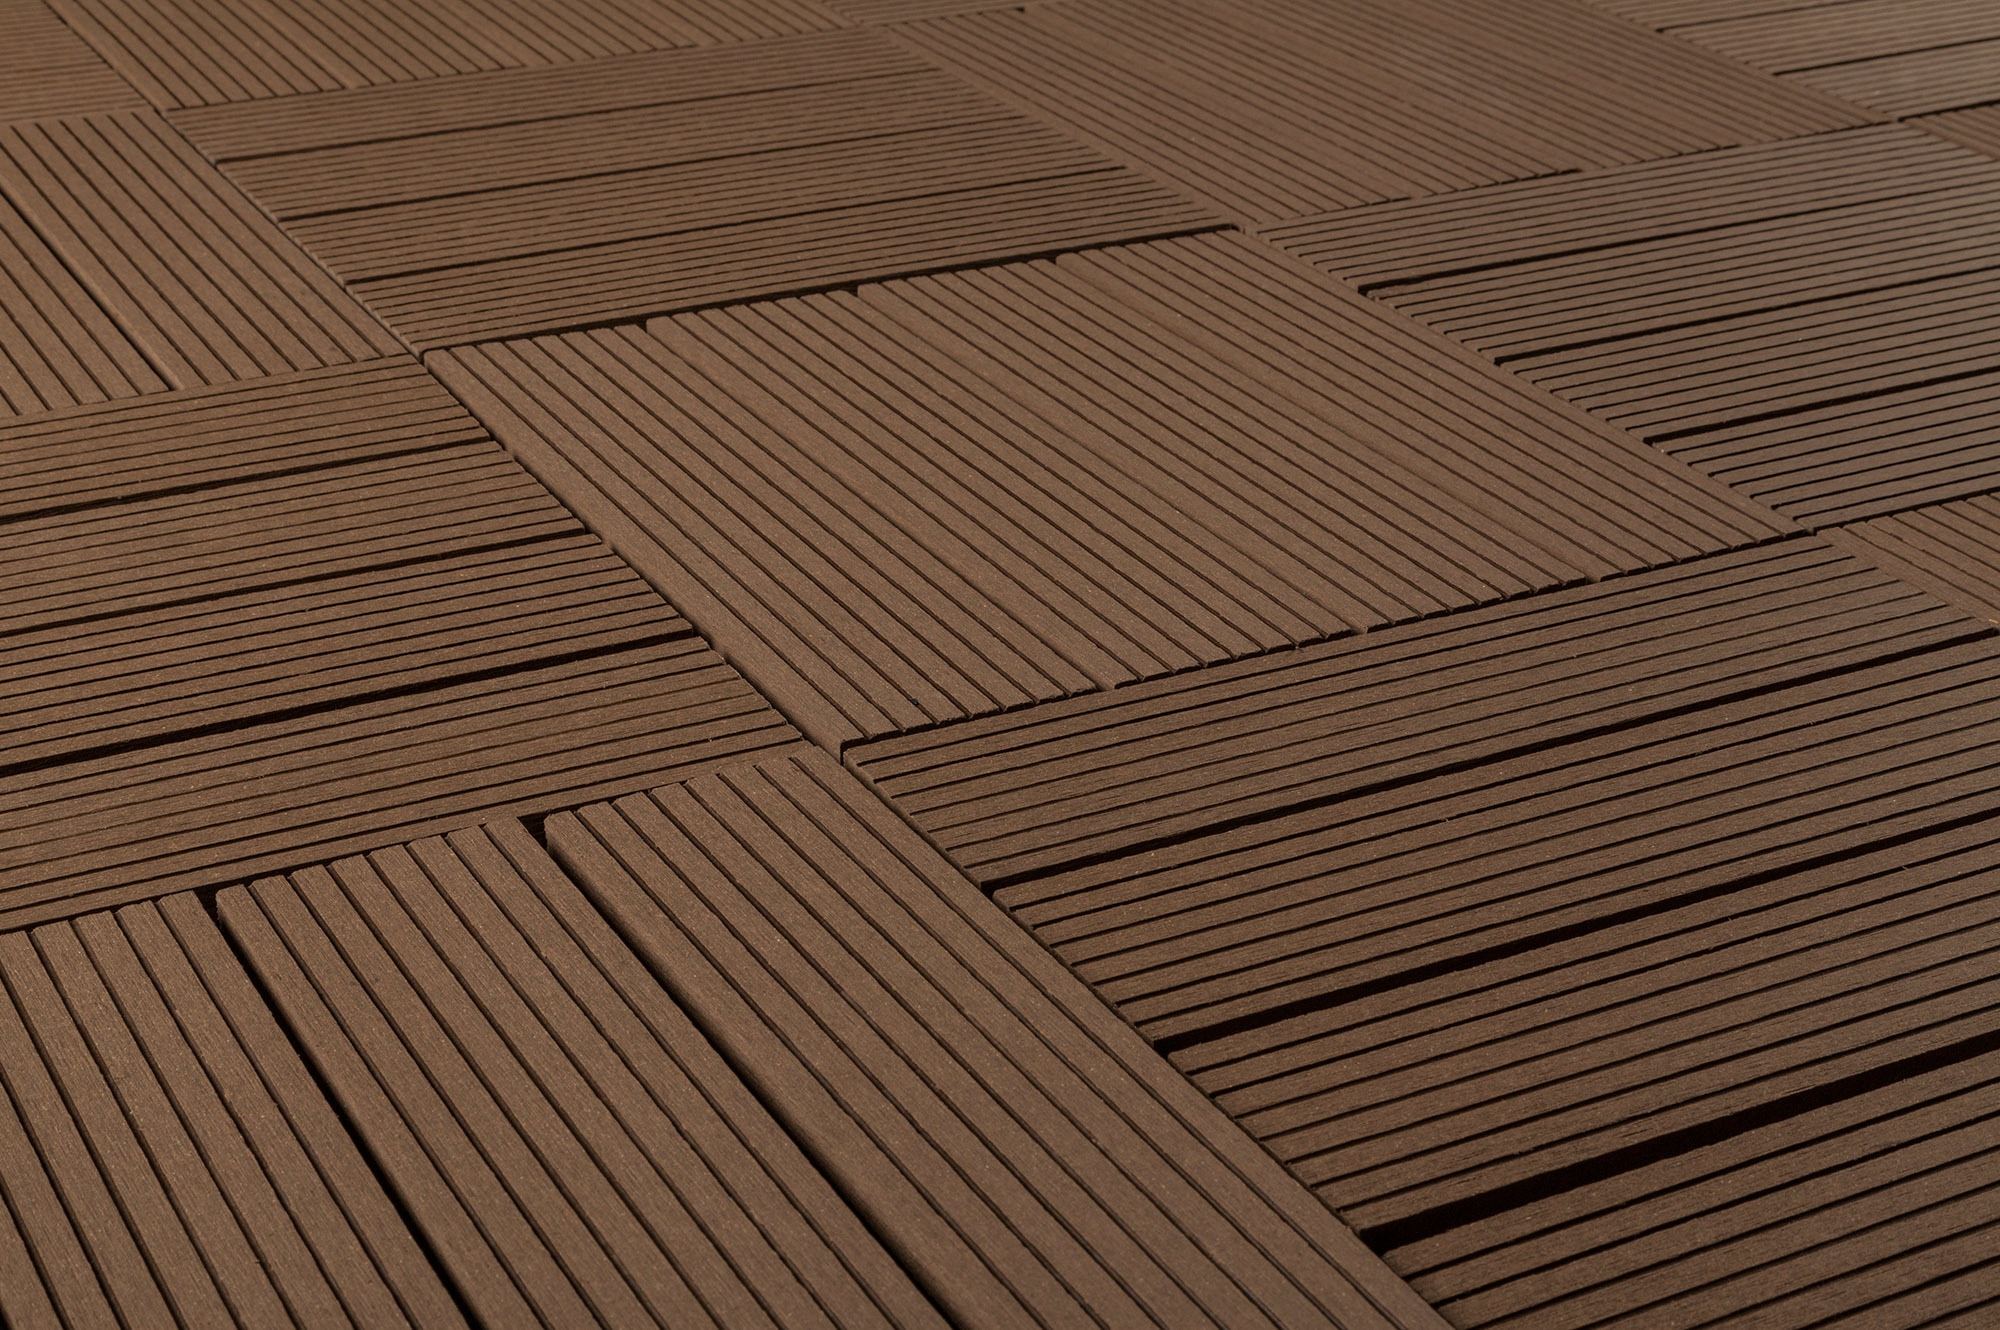 Composite Deck Tiles Kontiki Composite Interlocking Deck Tiles Classic 25